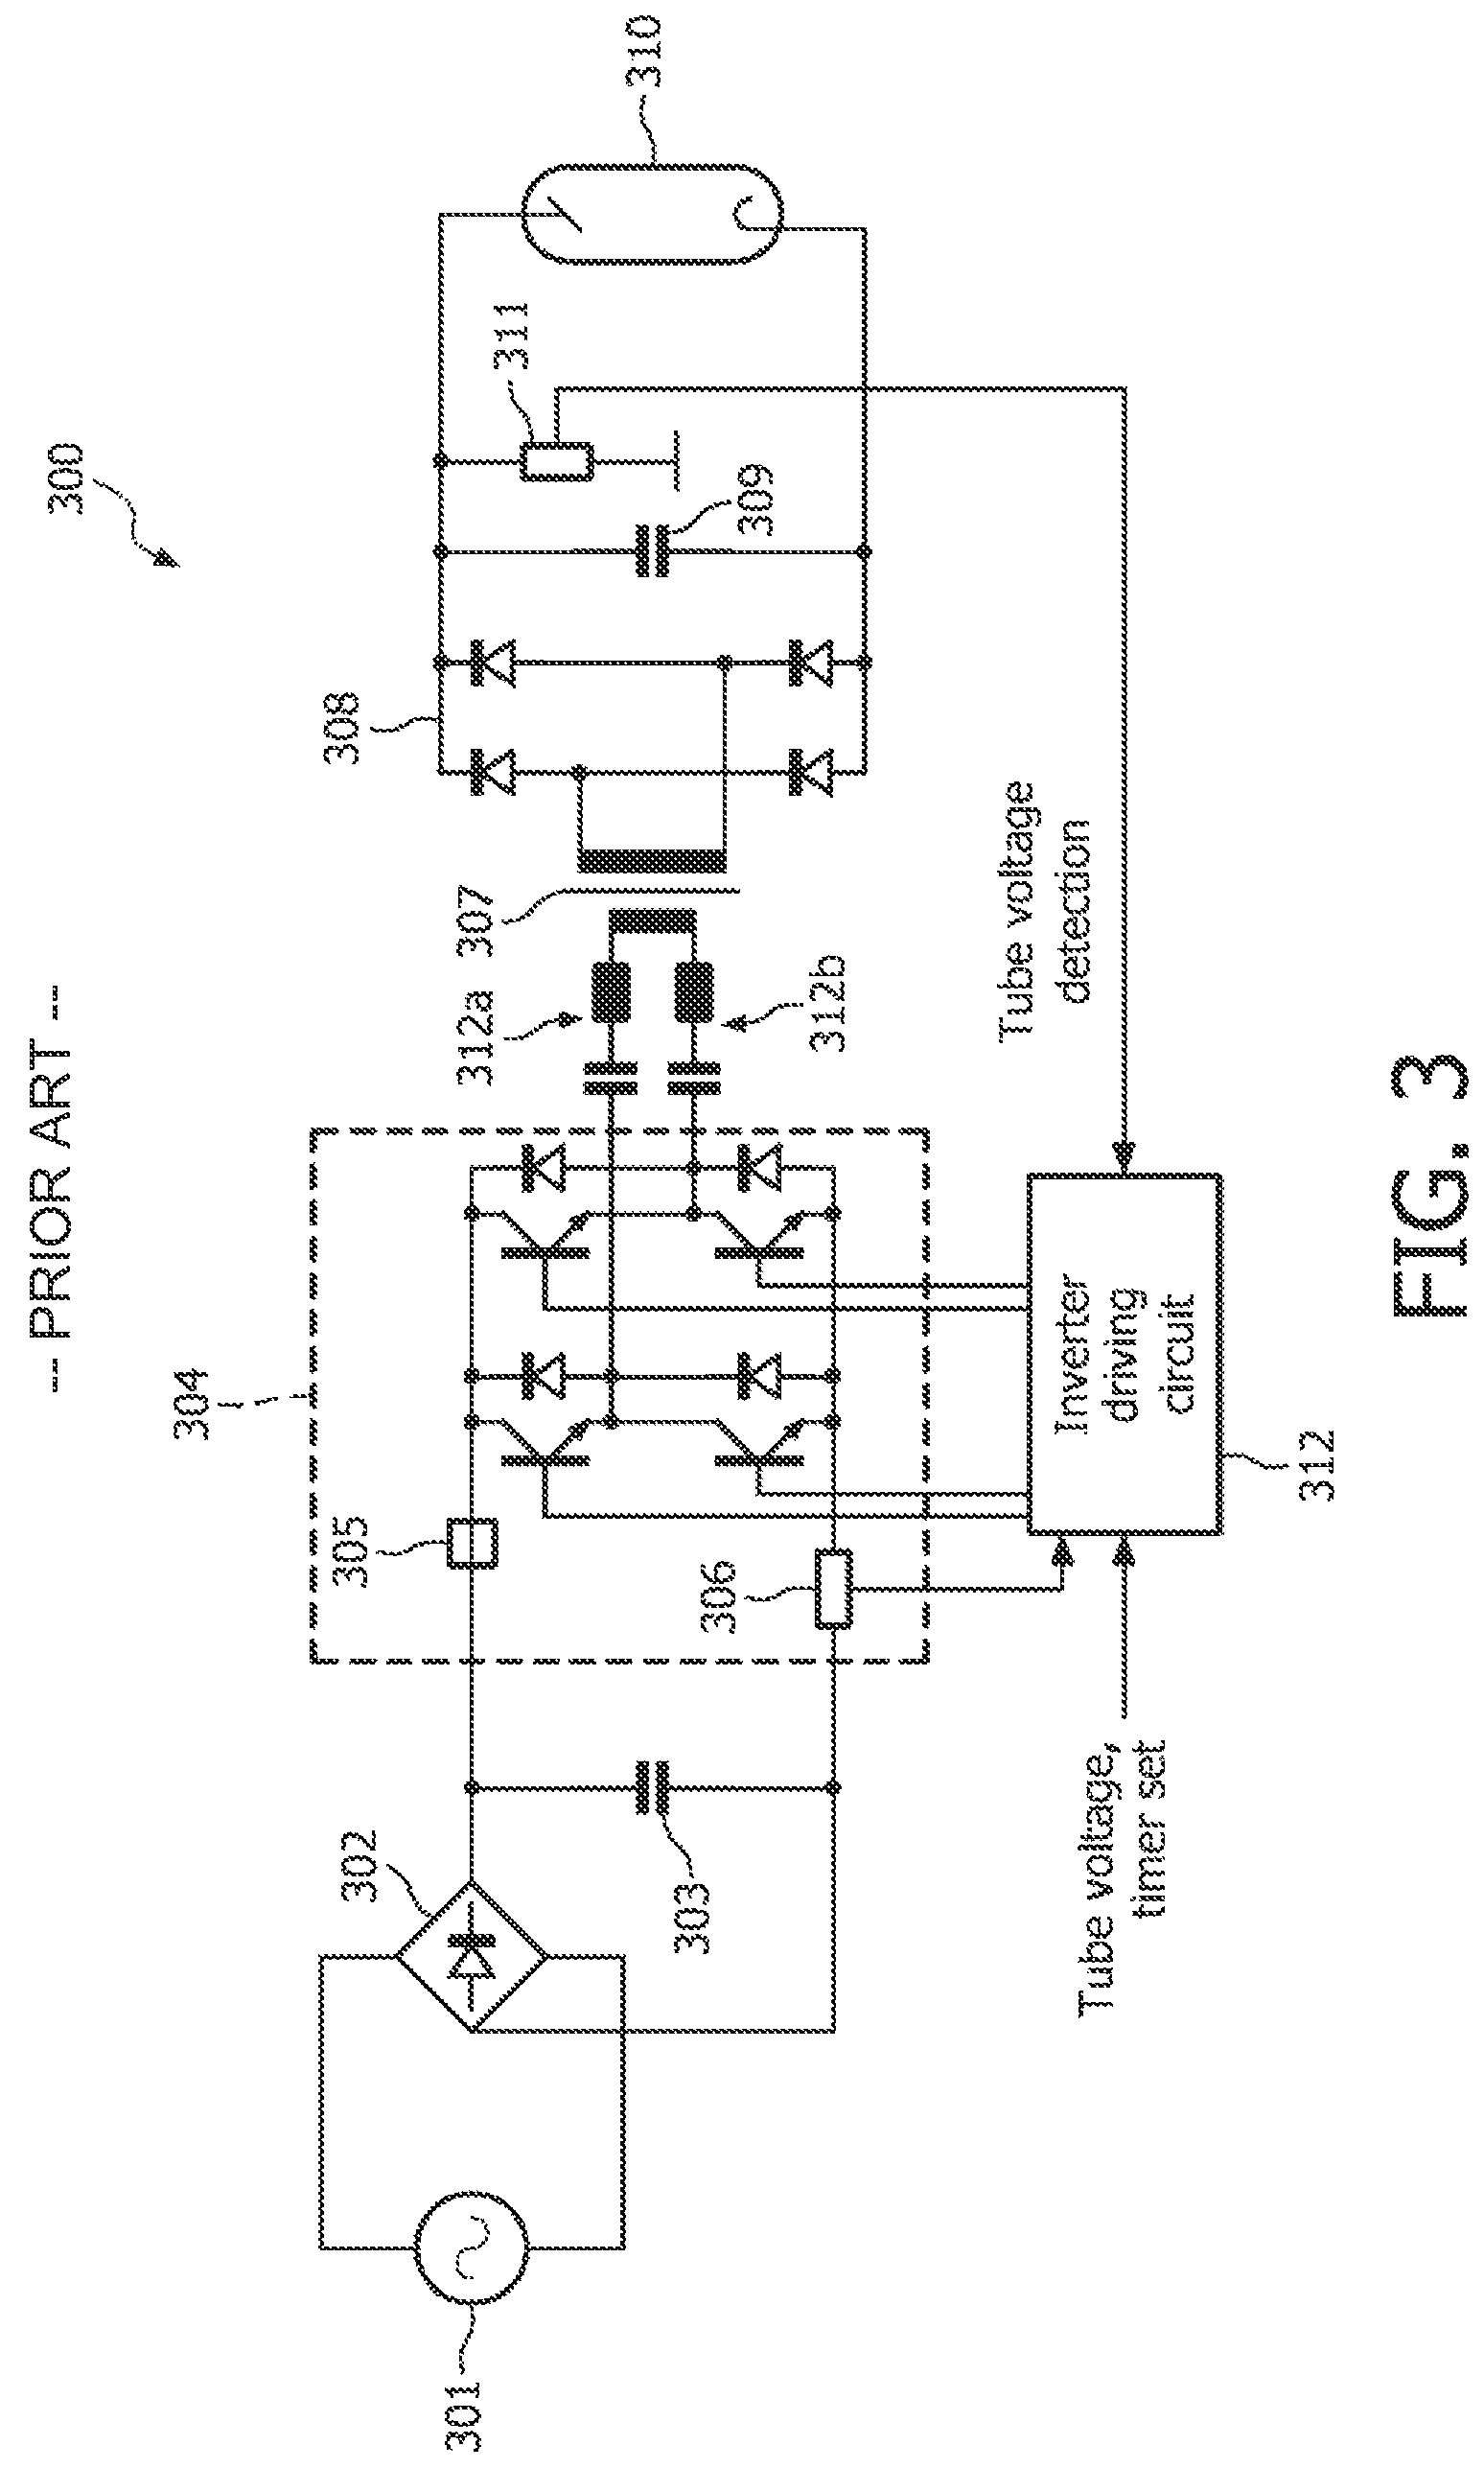 patent us8385504  ac power inverter control unit of a resonant power converter circuit  in